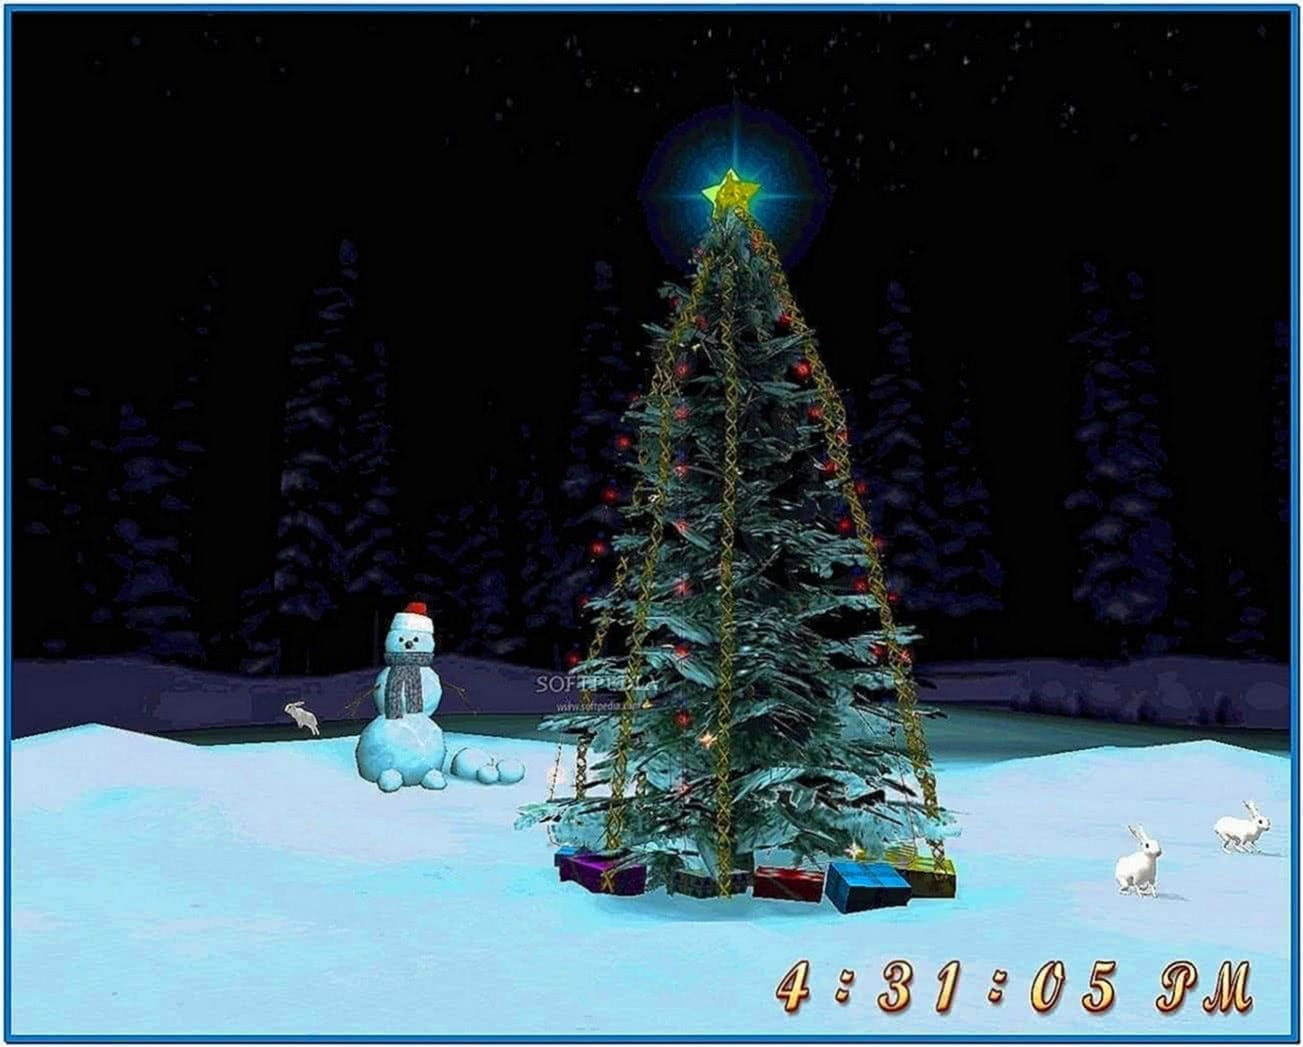 3D Screensaver Christmas Tree